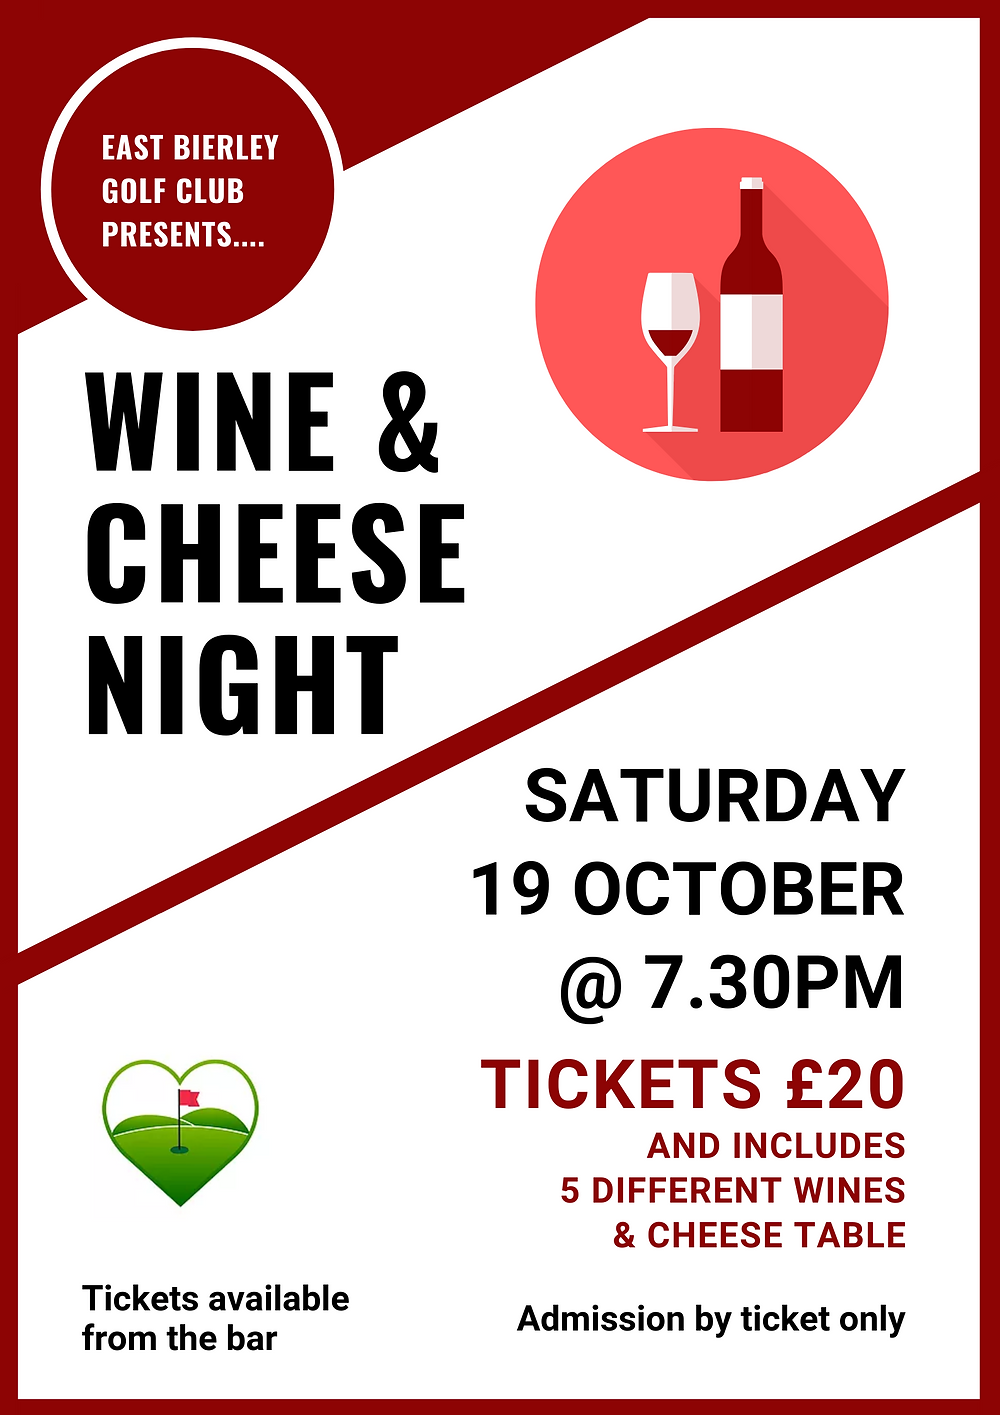 Wine and Cheese night Saturday 19 October at 7.30pm